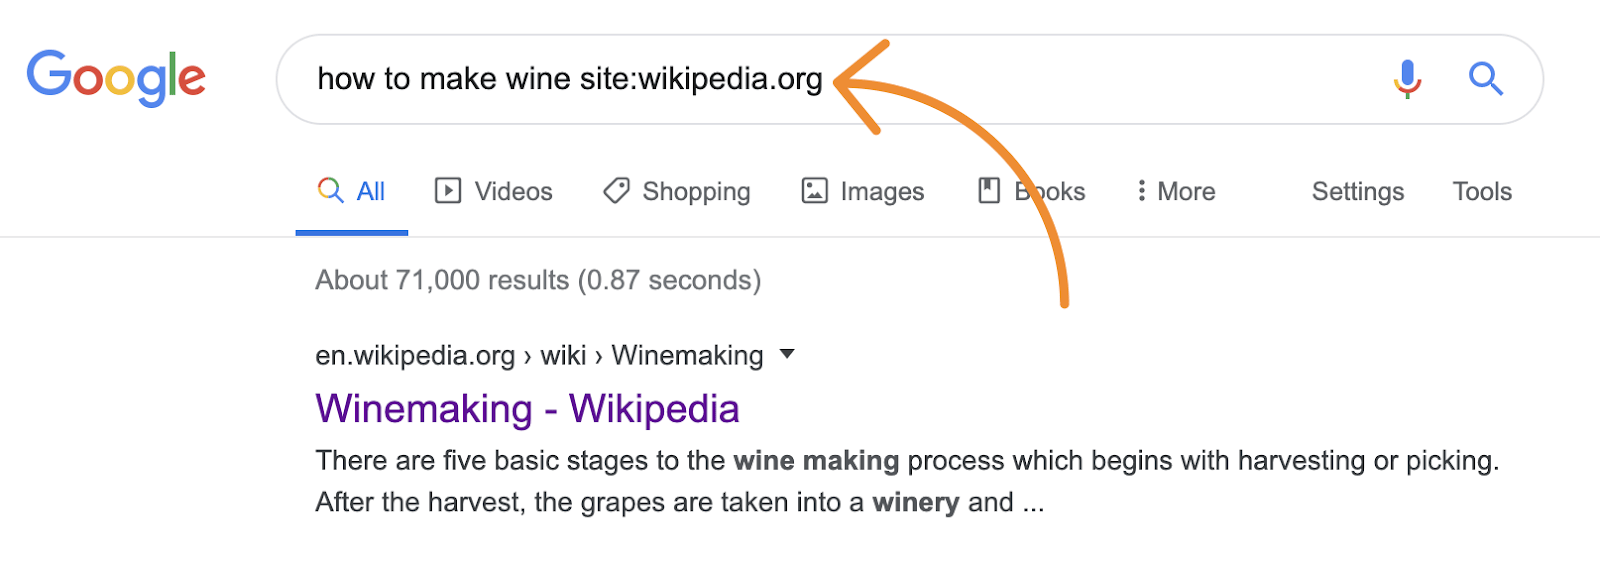 Google search for Wikipedia page about how to make wine